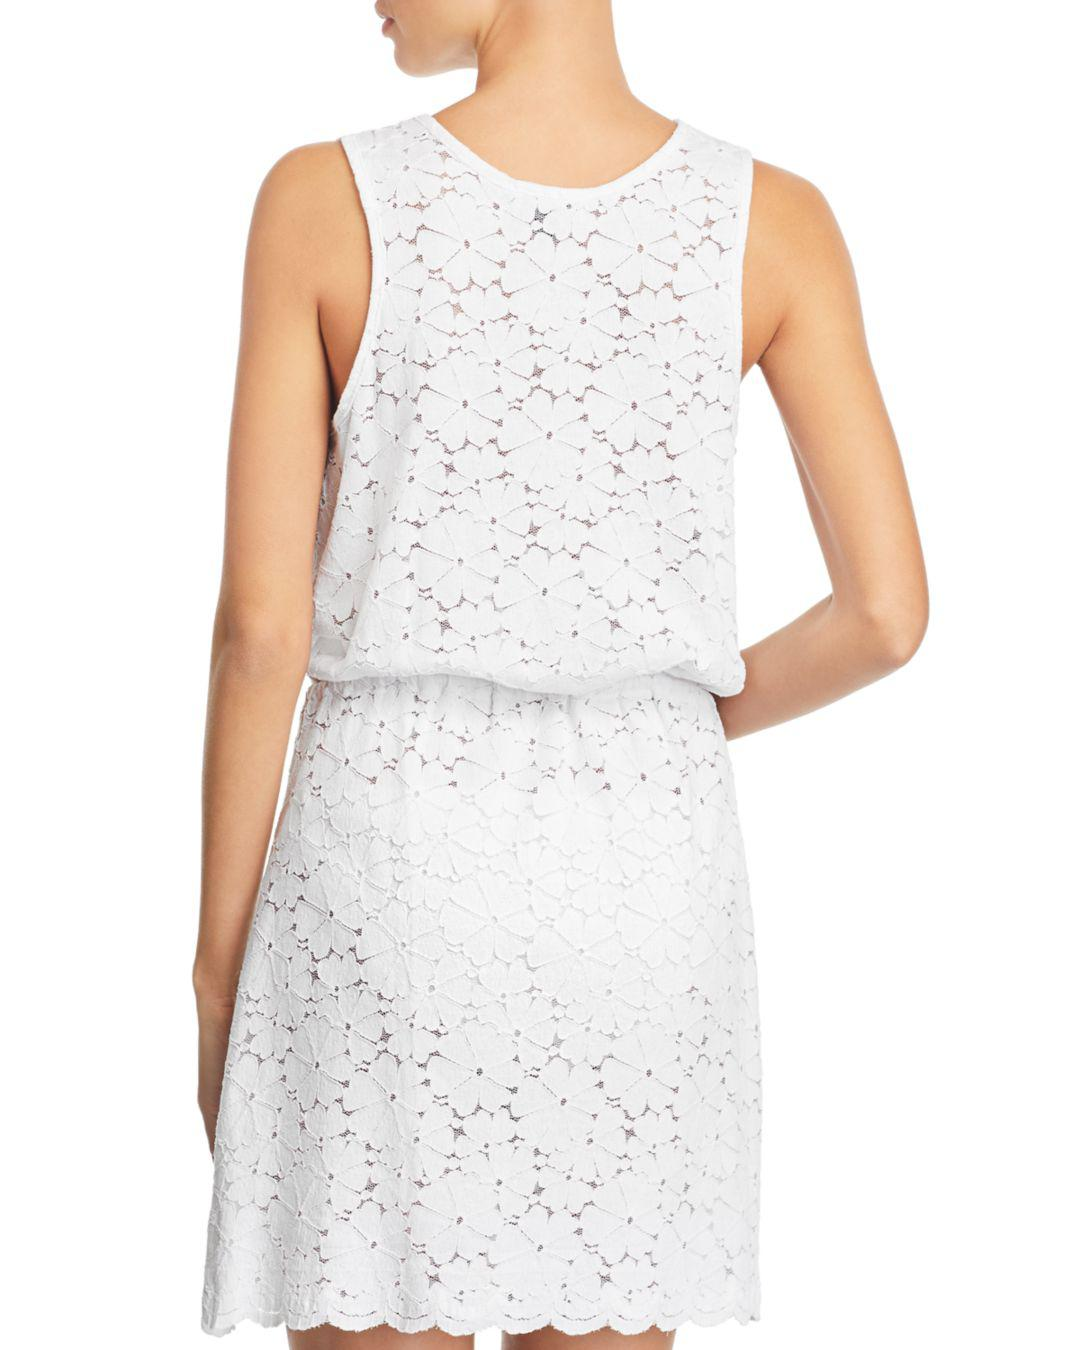 80e004cafd Lyst - J Valdi Flower Child Sleeveless Lace Swim Cover-up in White